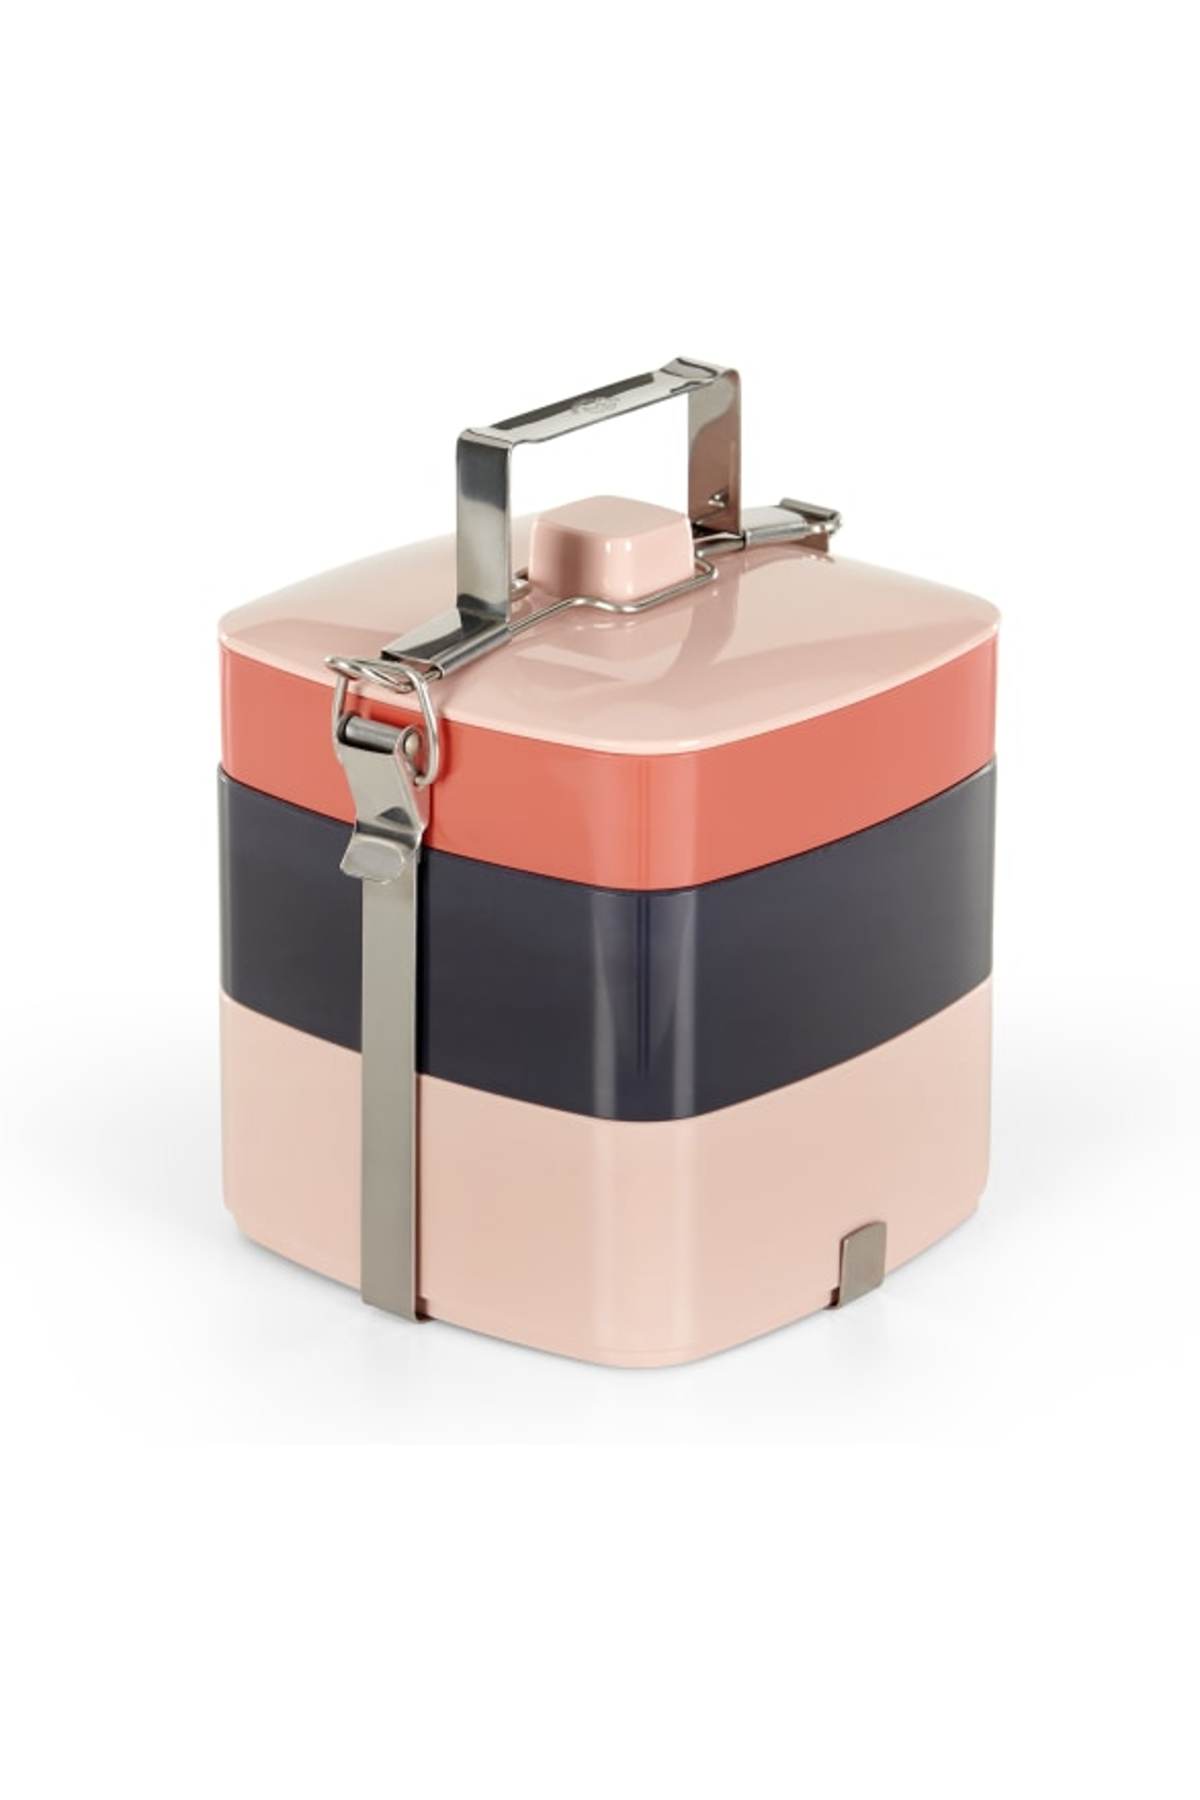 Lunch Box Png Image Lunch Box Lunch Food